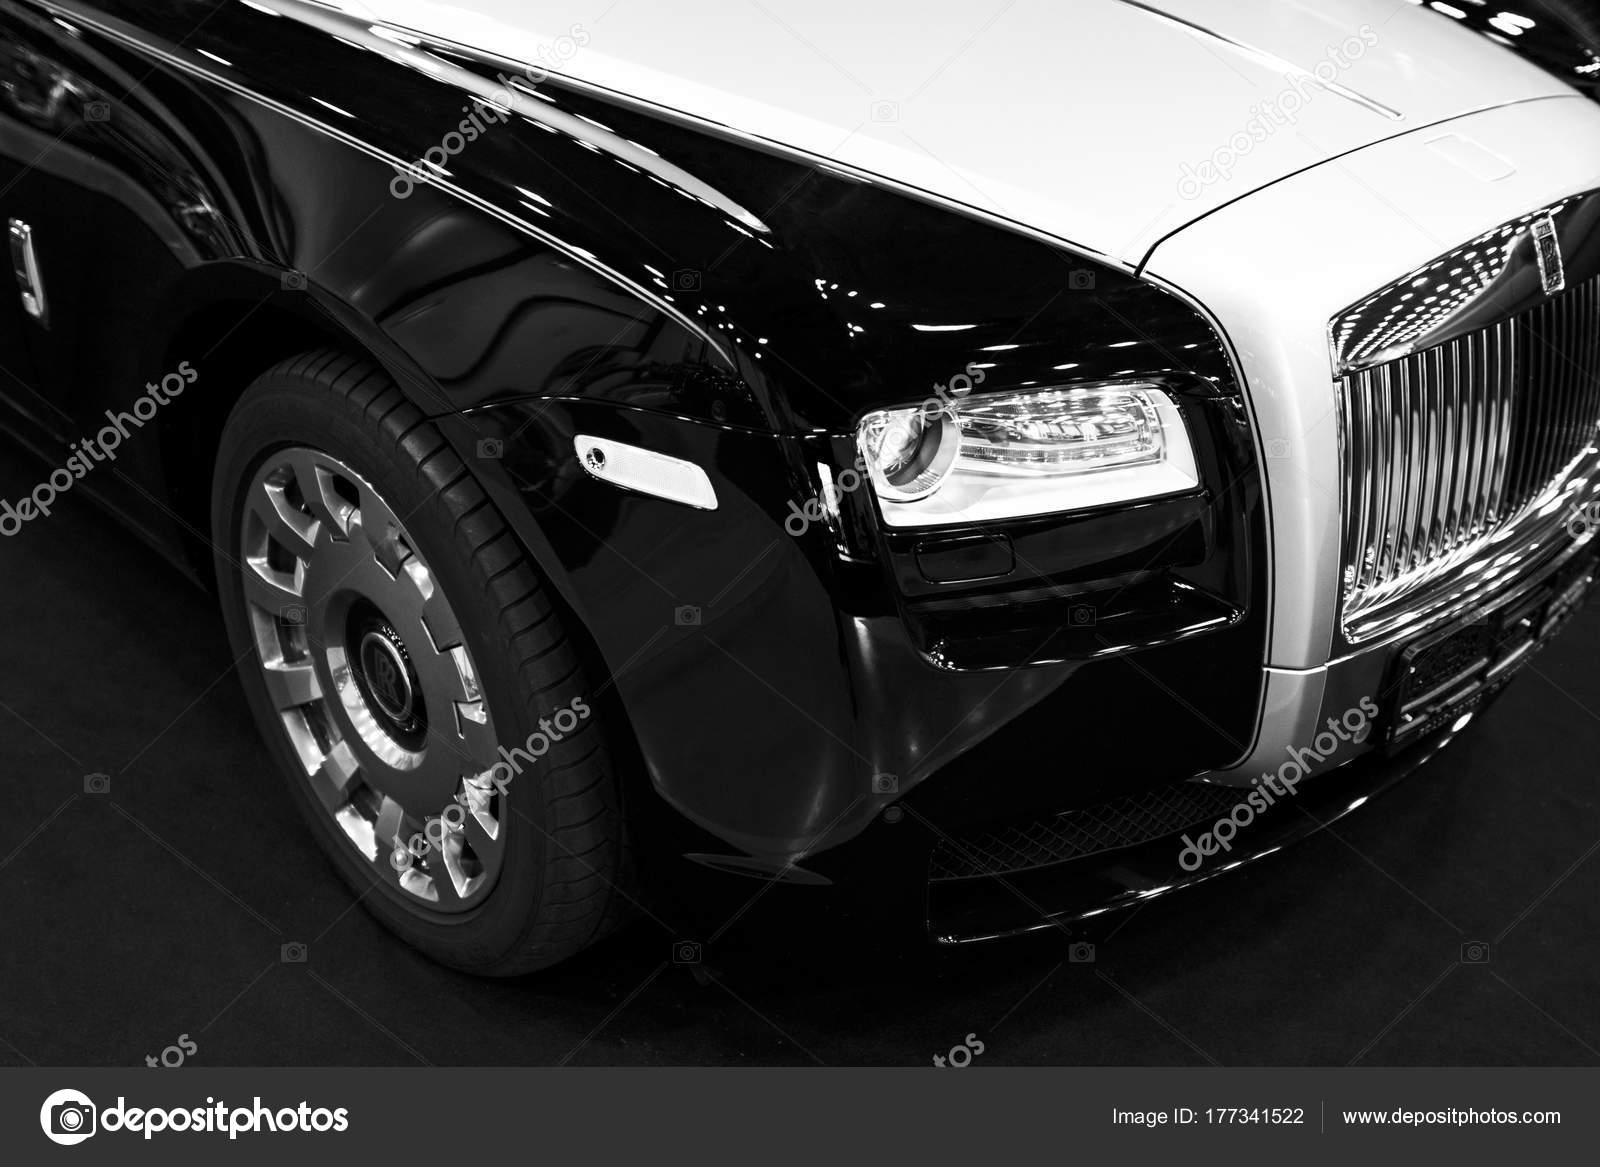 Front View Of A Luxury Car Rolls Royce Phantom Black And White Stock Editorial Photo C Bigtunaonline 177341522